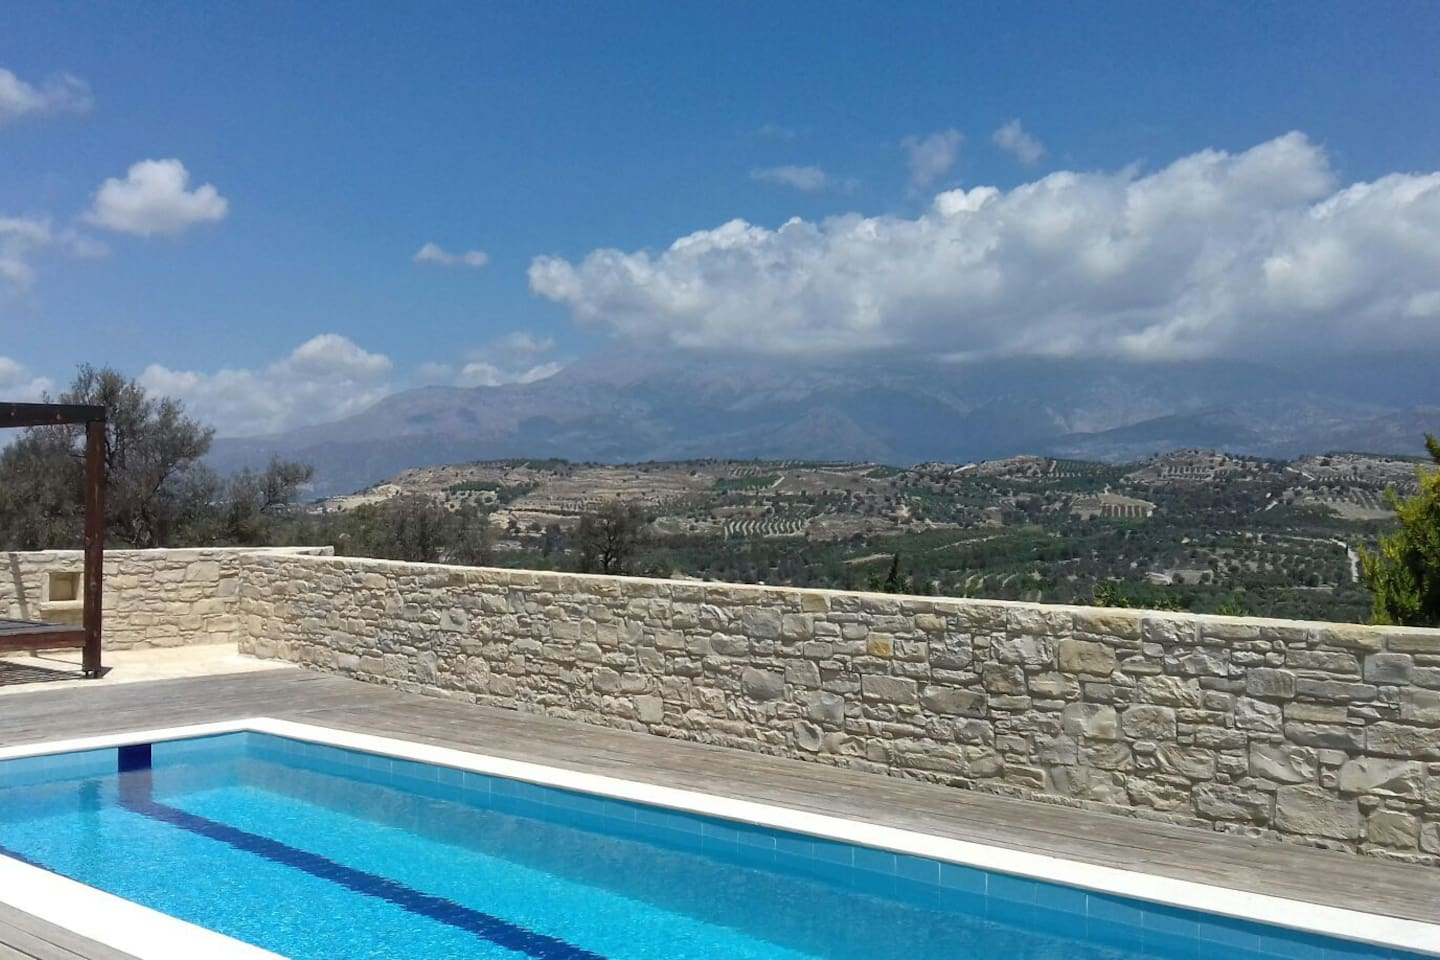 psiloritis and festos palace behind the pool